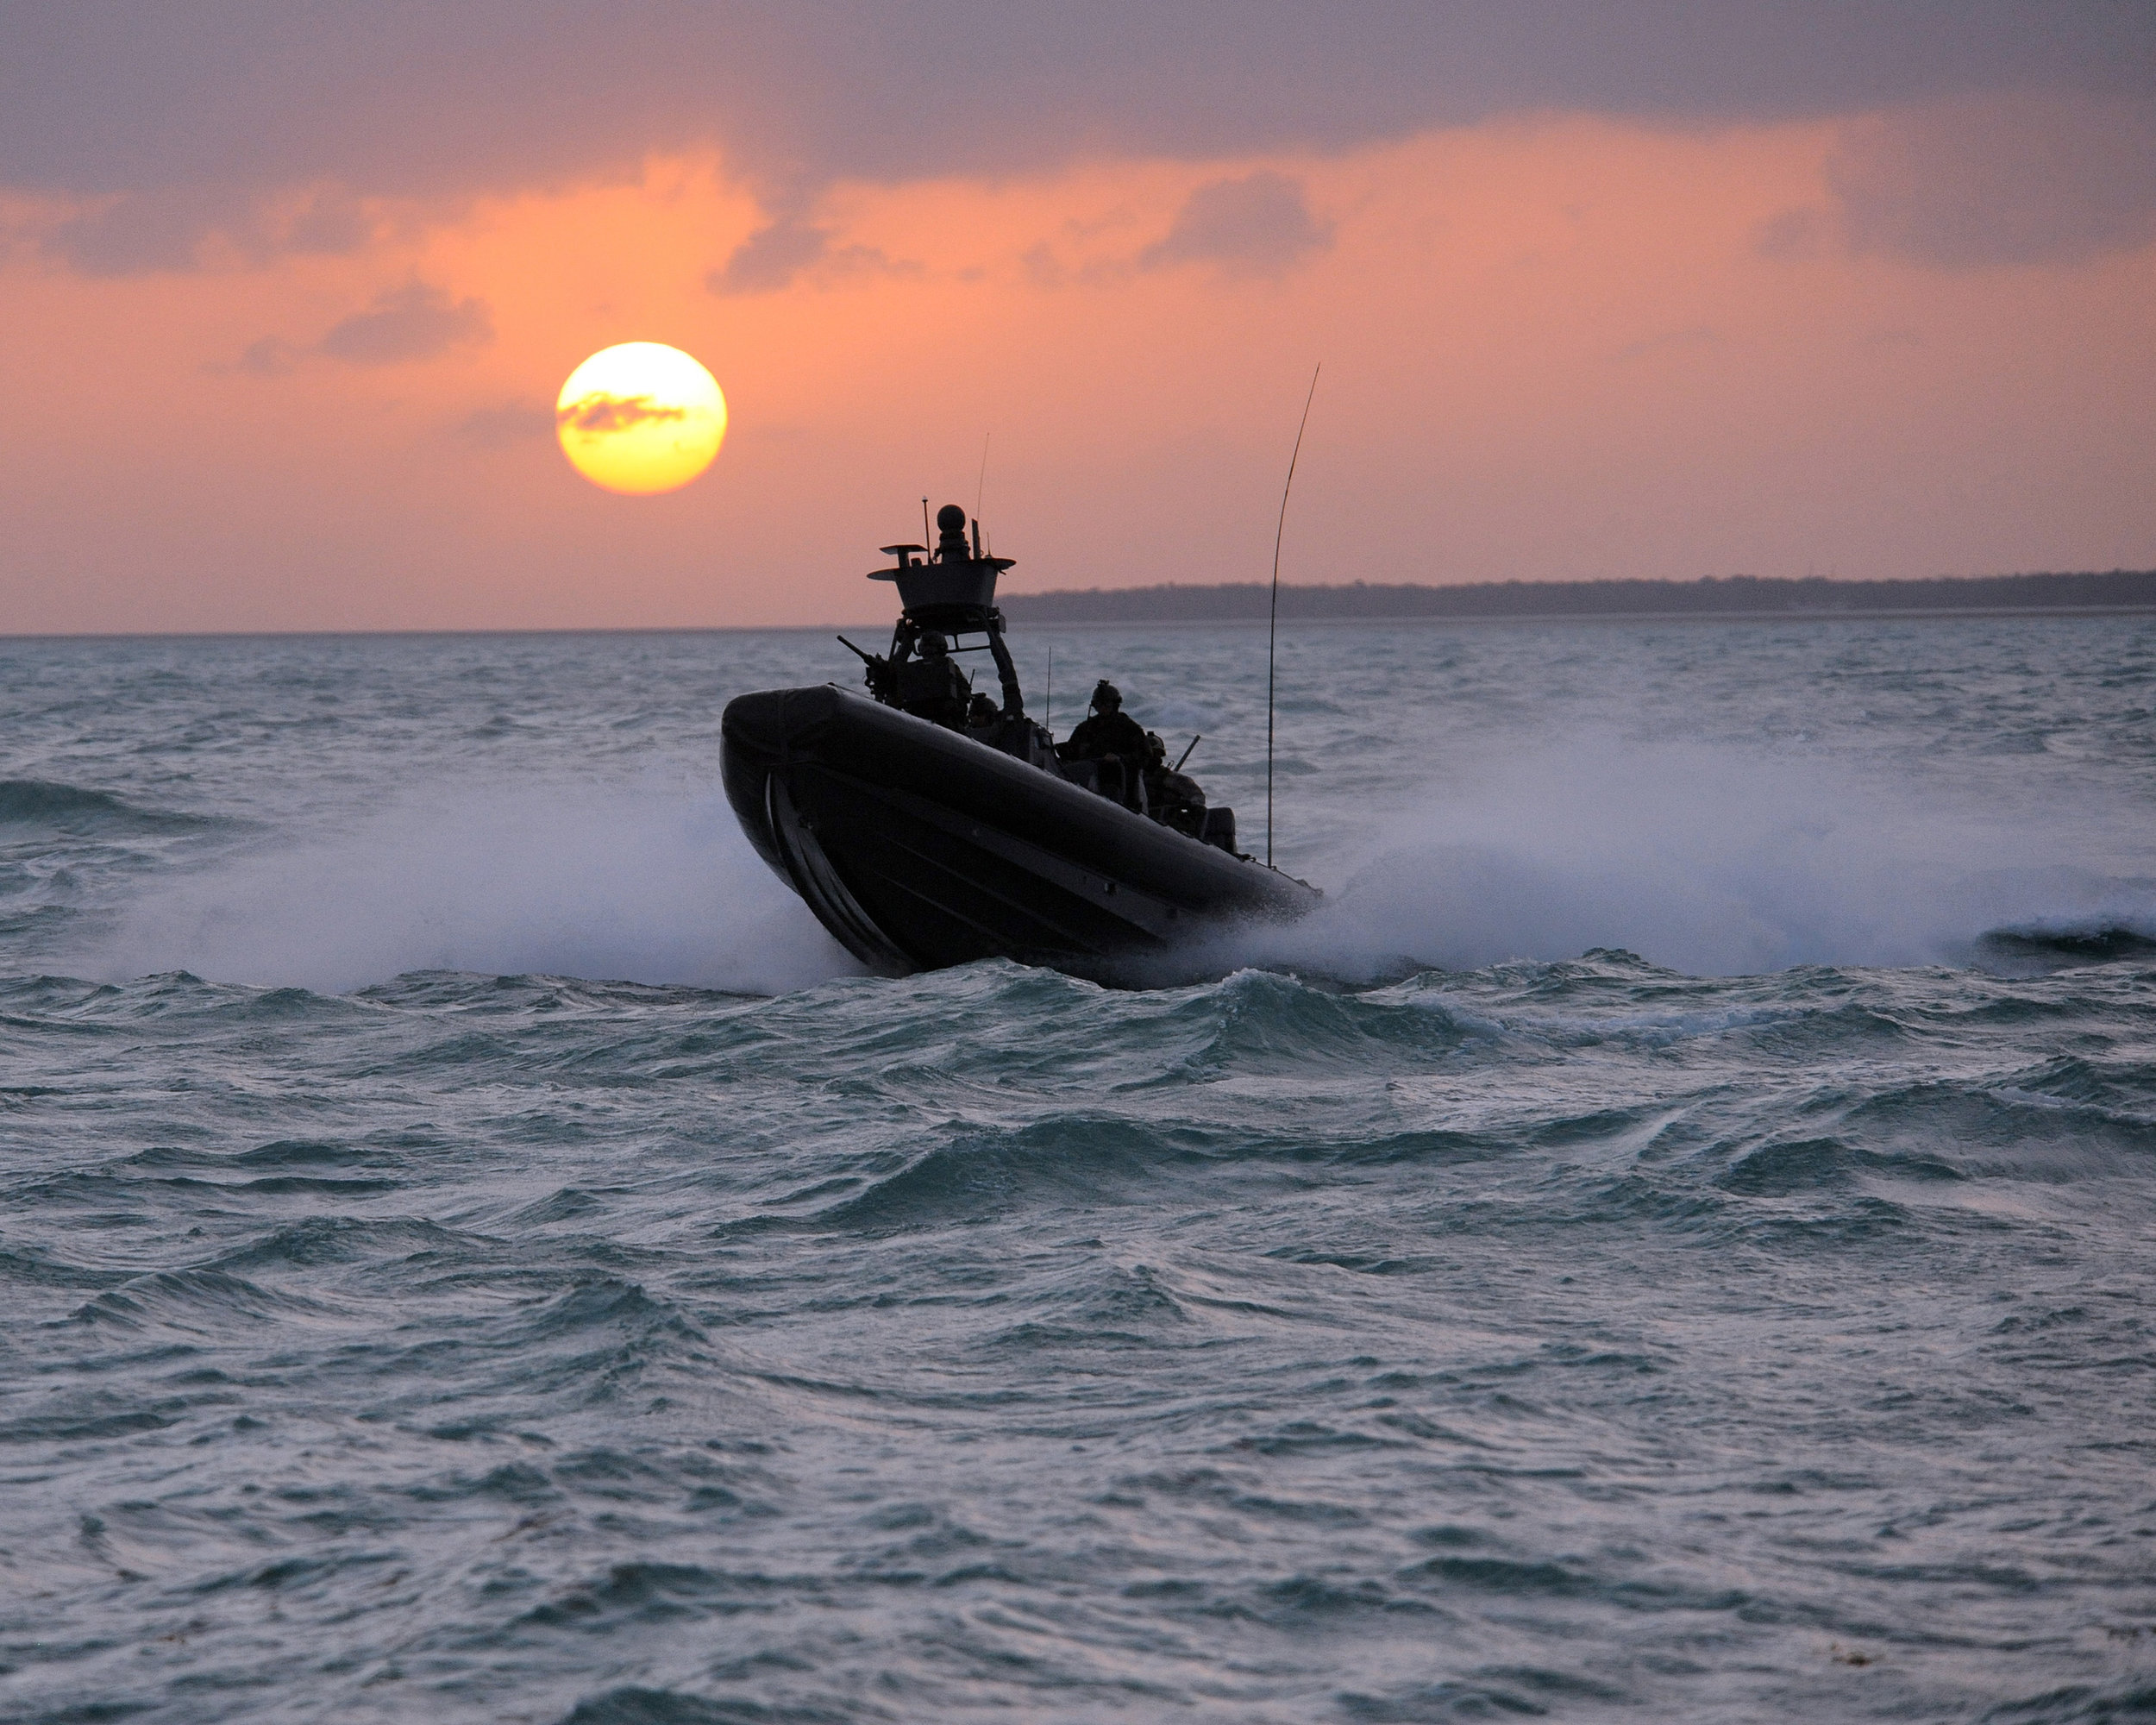 SWCC boat on the waves at sunset